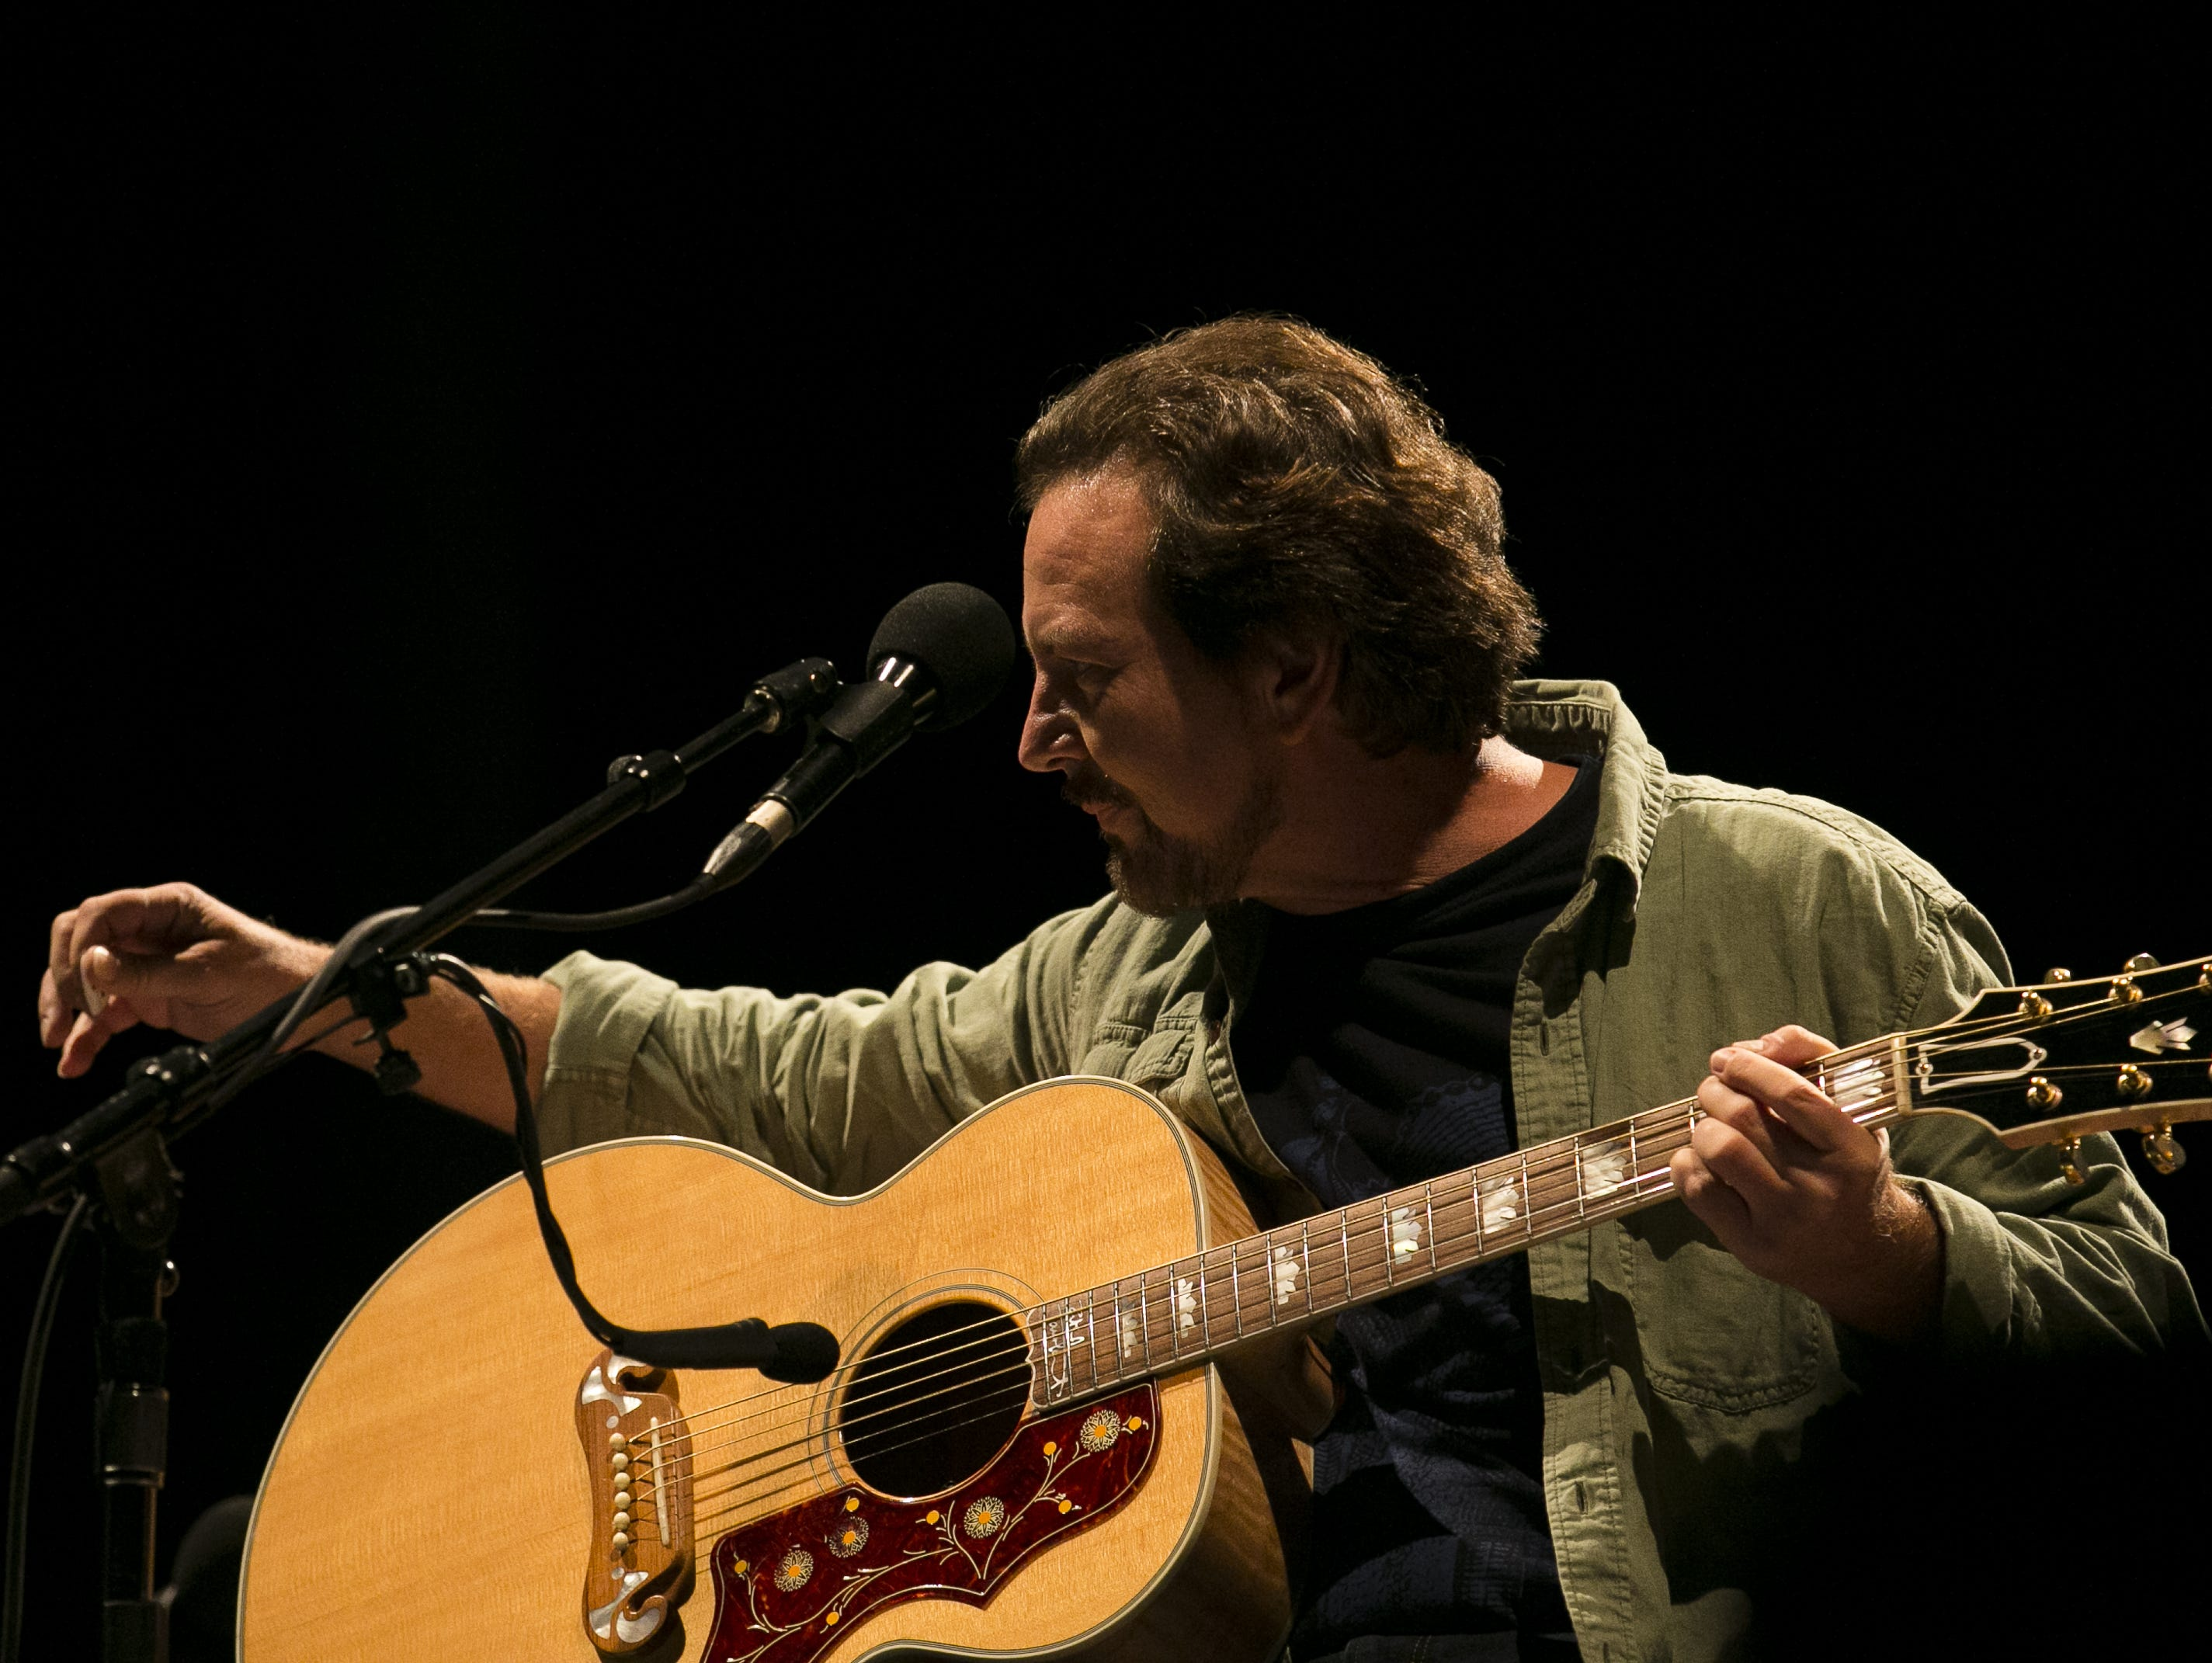 Eddie Vedder performs at the Innings Festival at Tempe Beach Park on March 3, 2019.